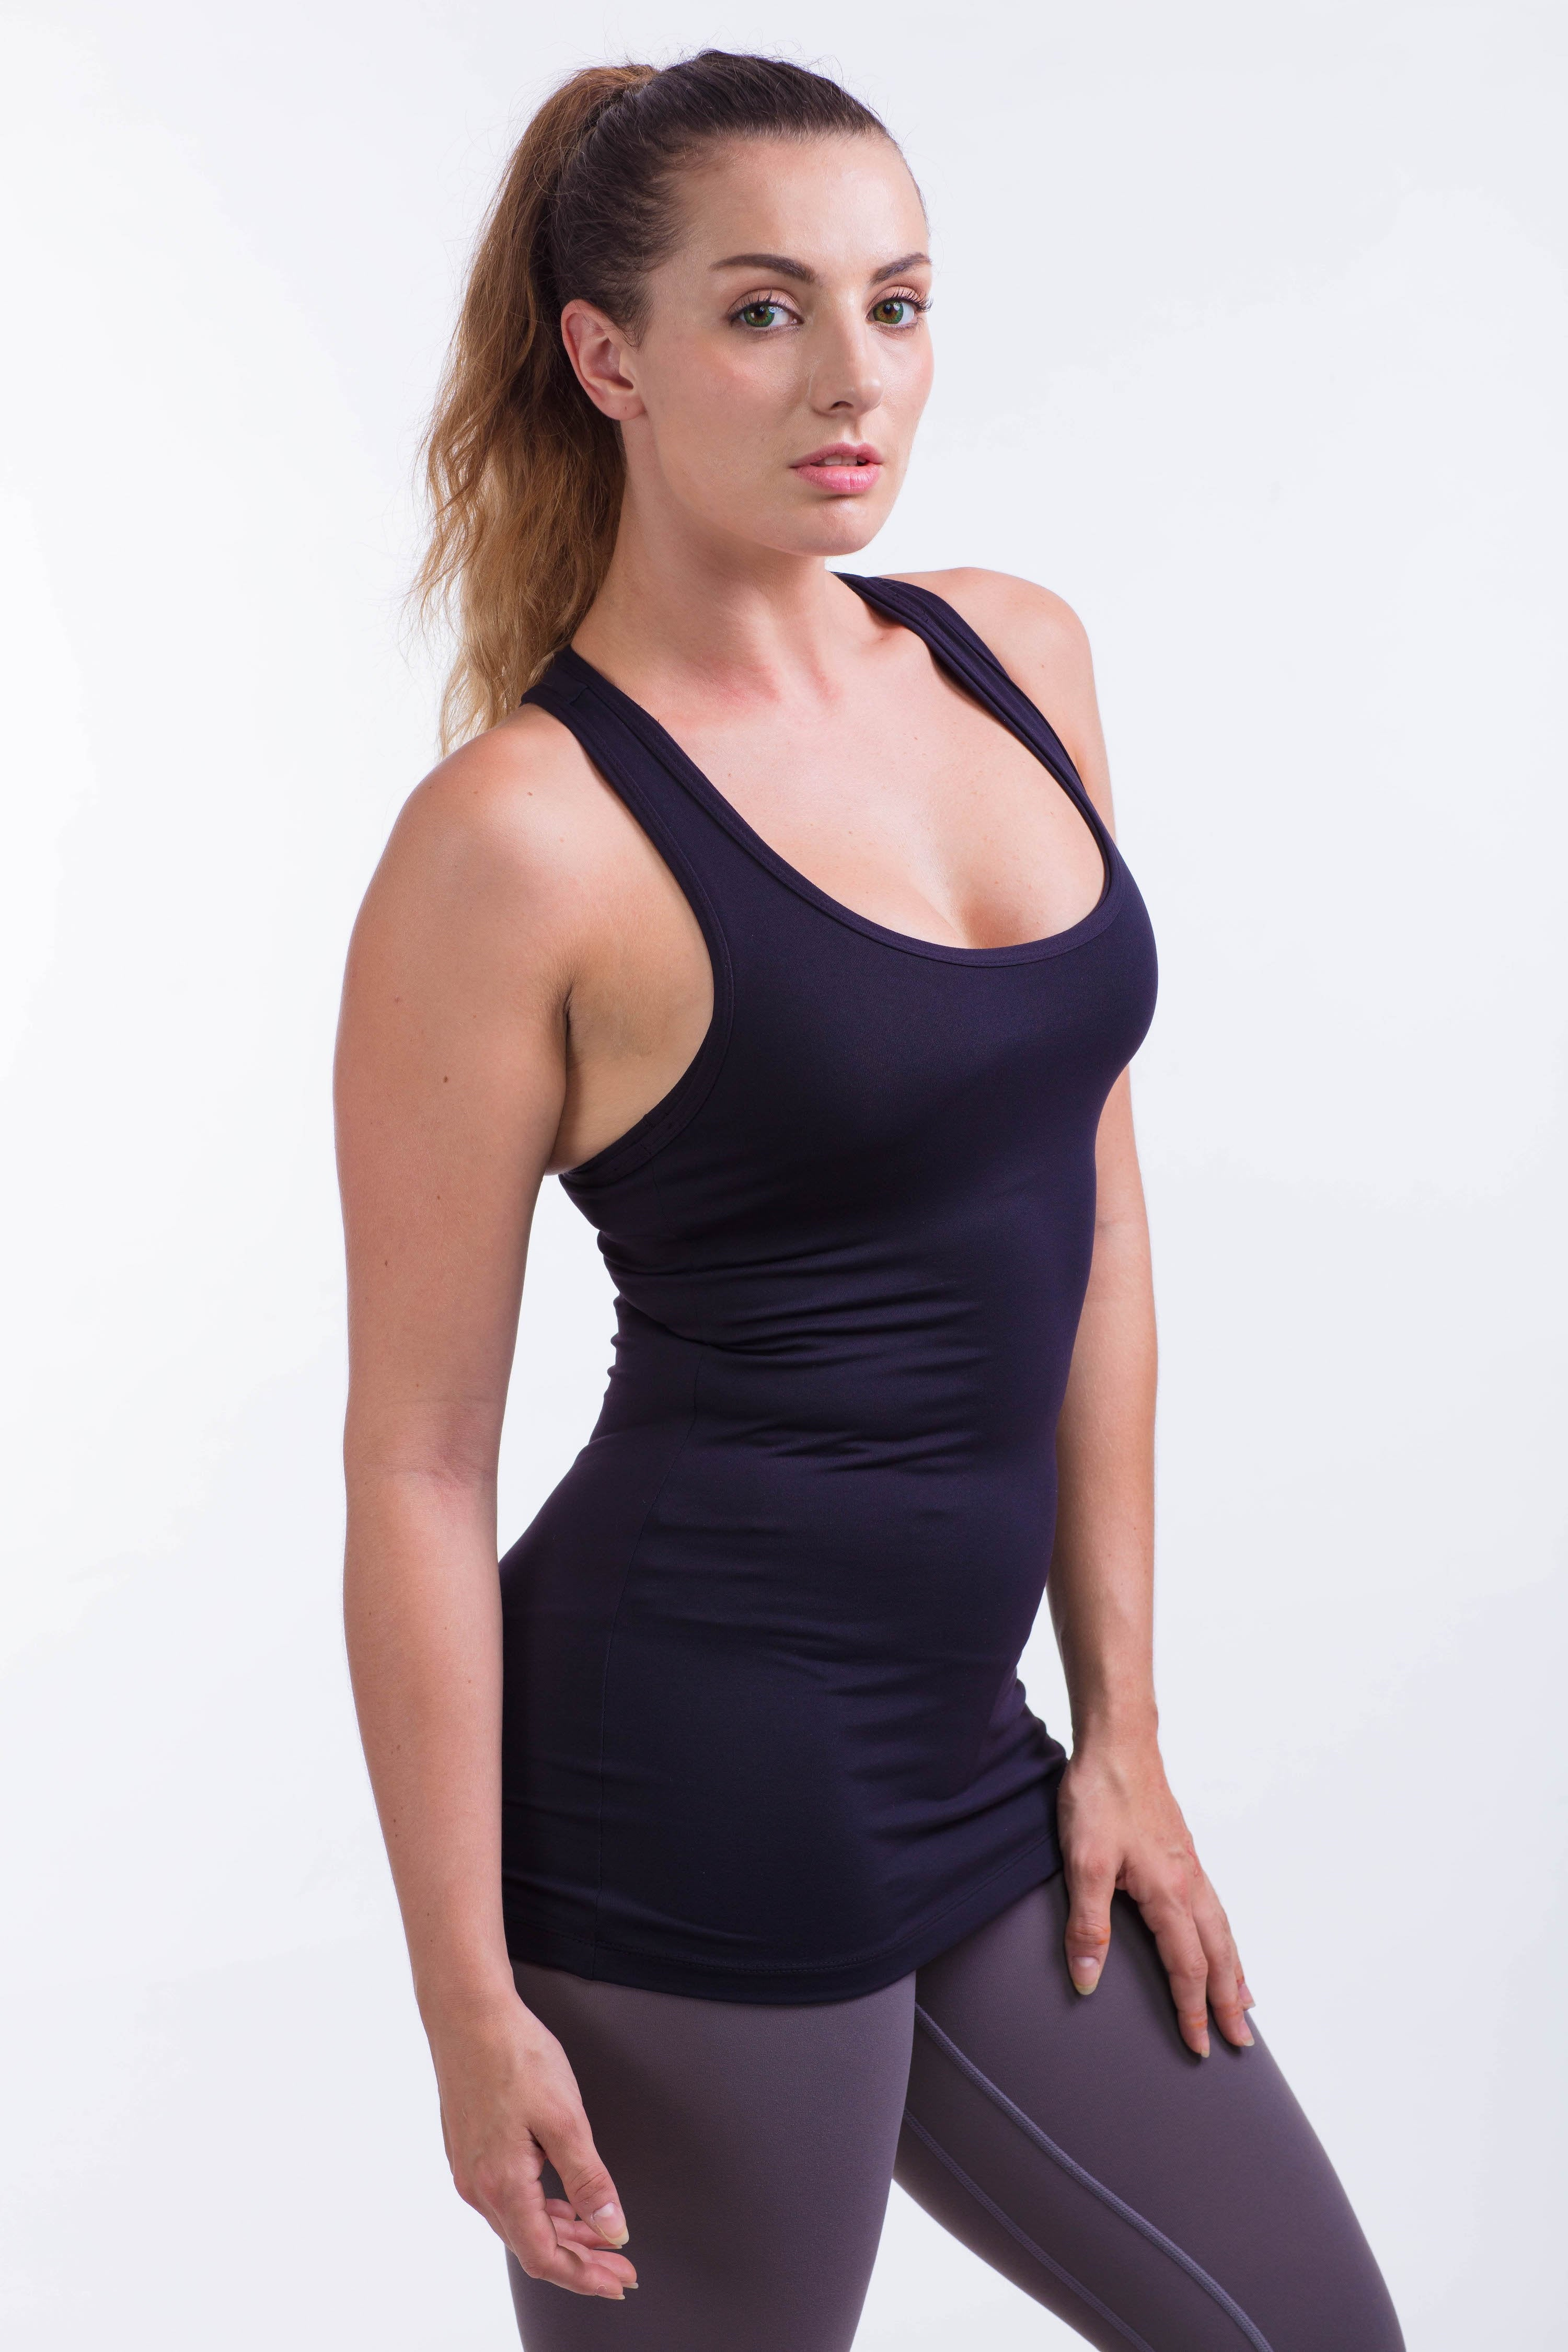 BARE IN MIND TANK - BLACK - hustletics.com